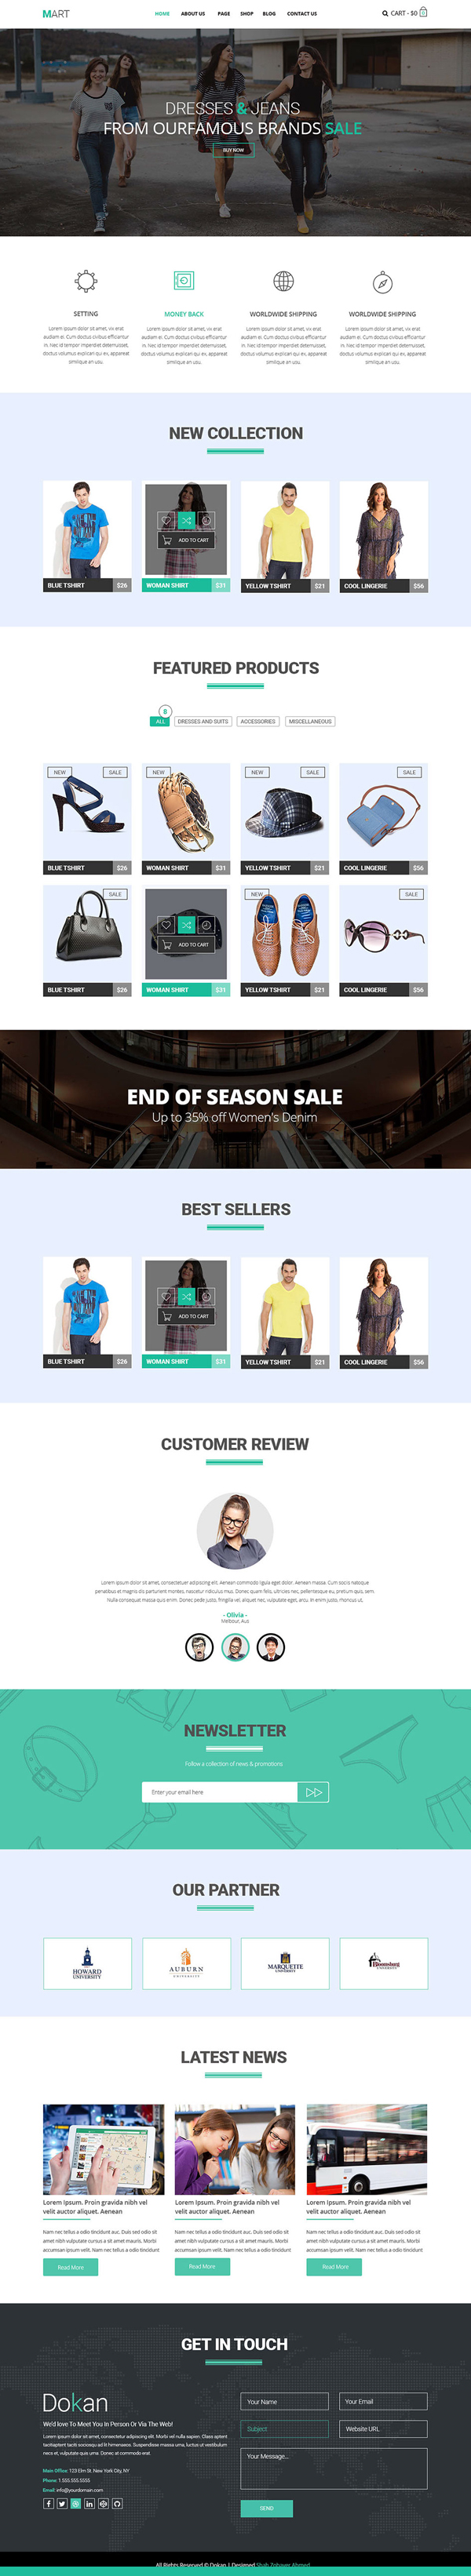 responsive psd website templates bies graphic mart ecommerce website template psd html